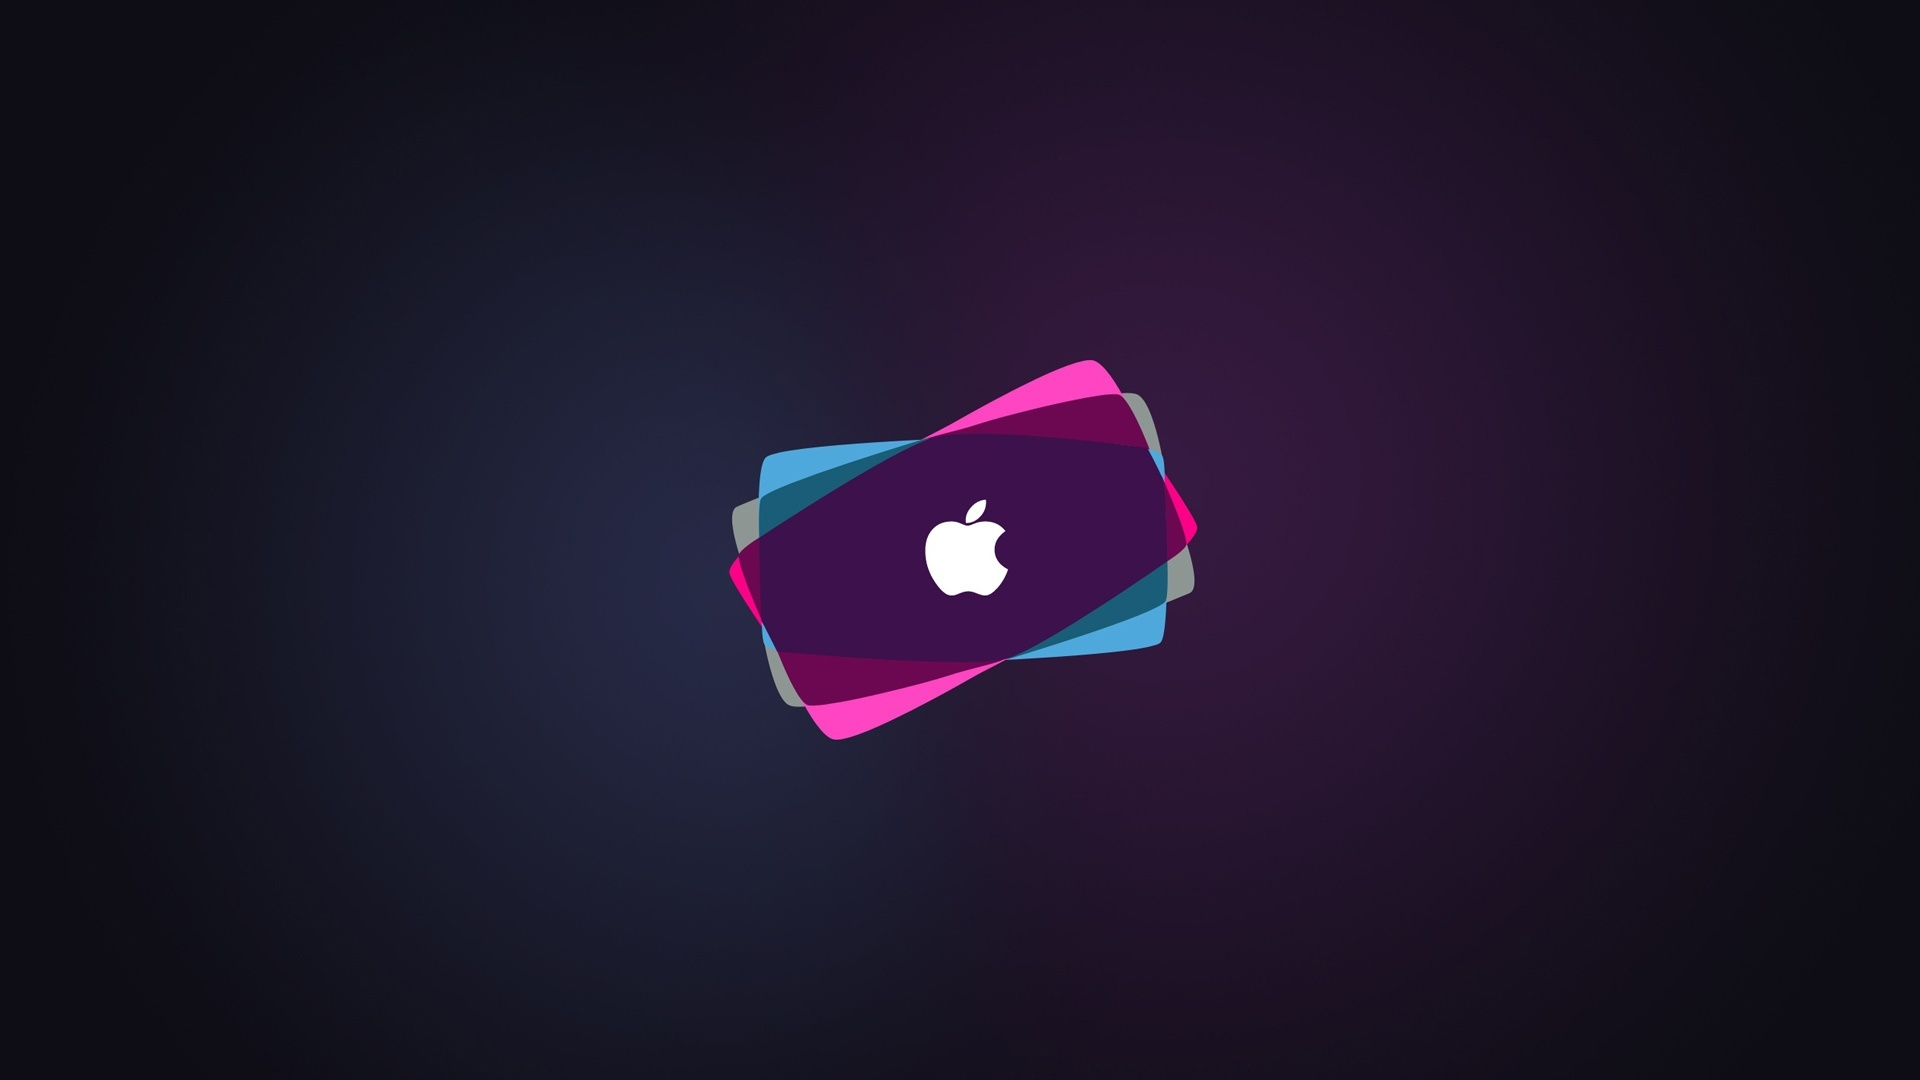 1920x1080 Apple LCD Desktop PC And Mac Wallpaper